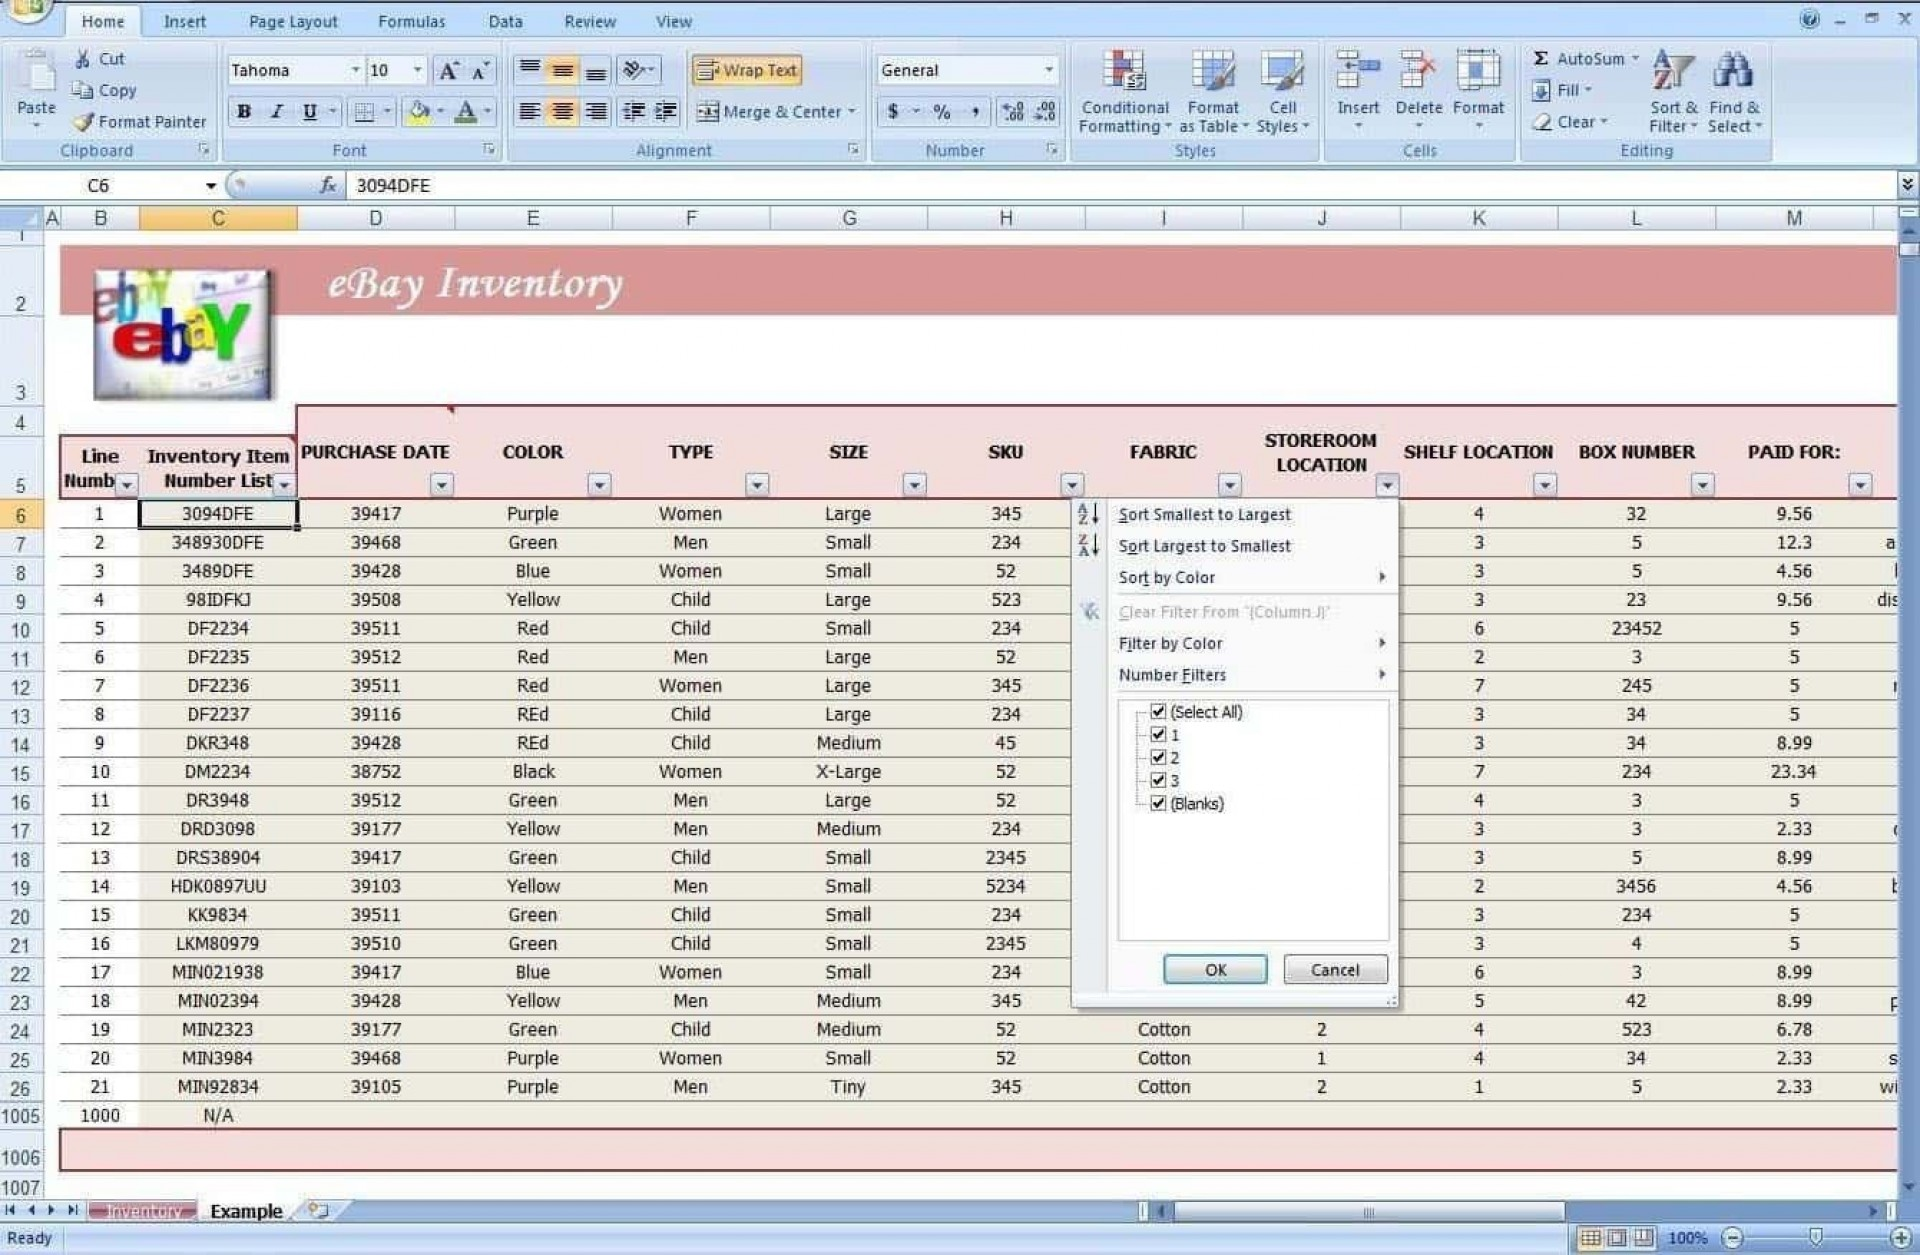 008 Astounding Excel Phone List Template Software Download Example 1920